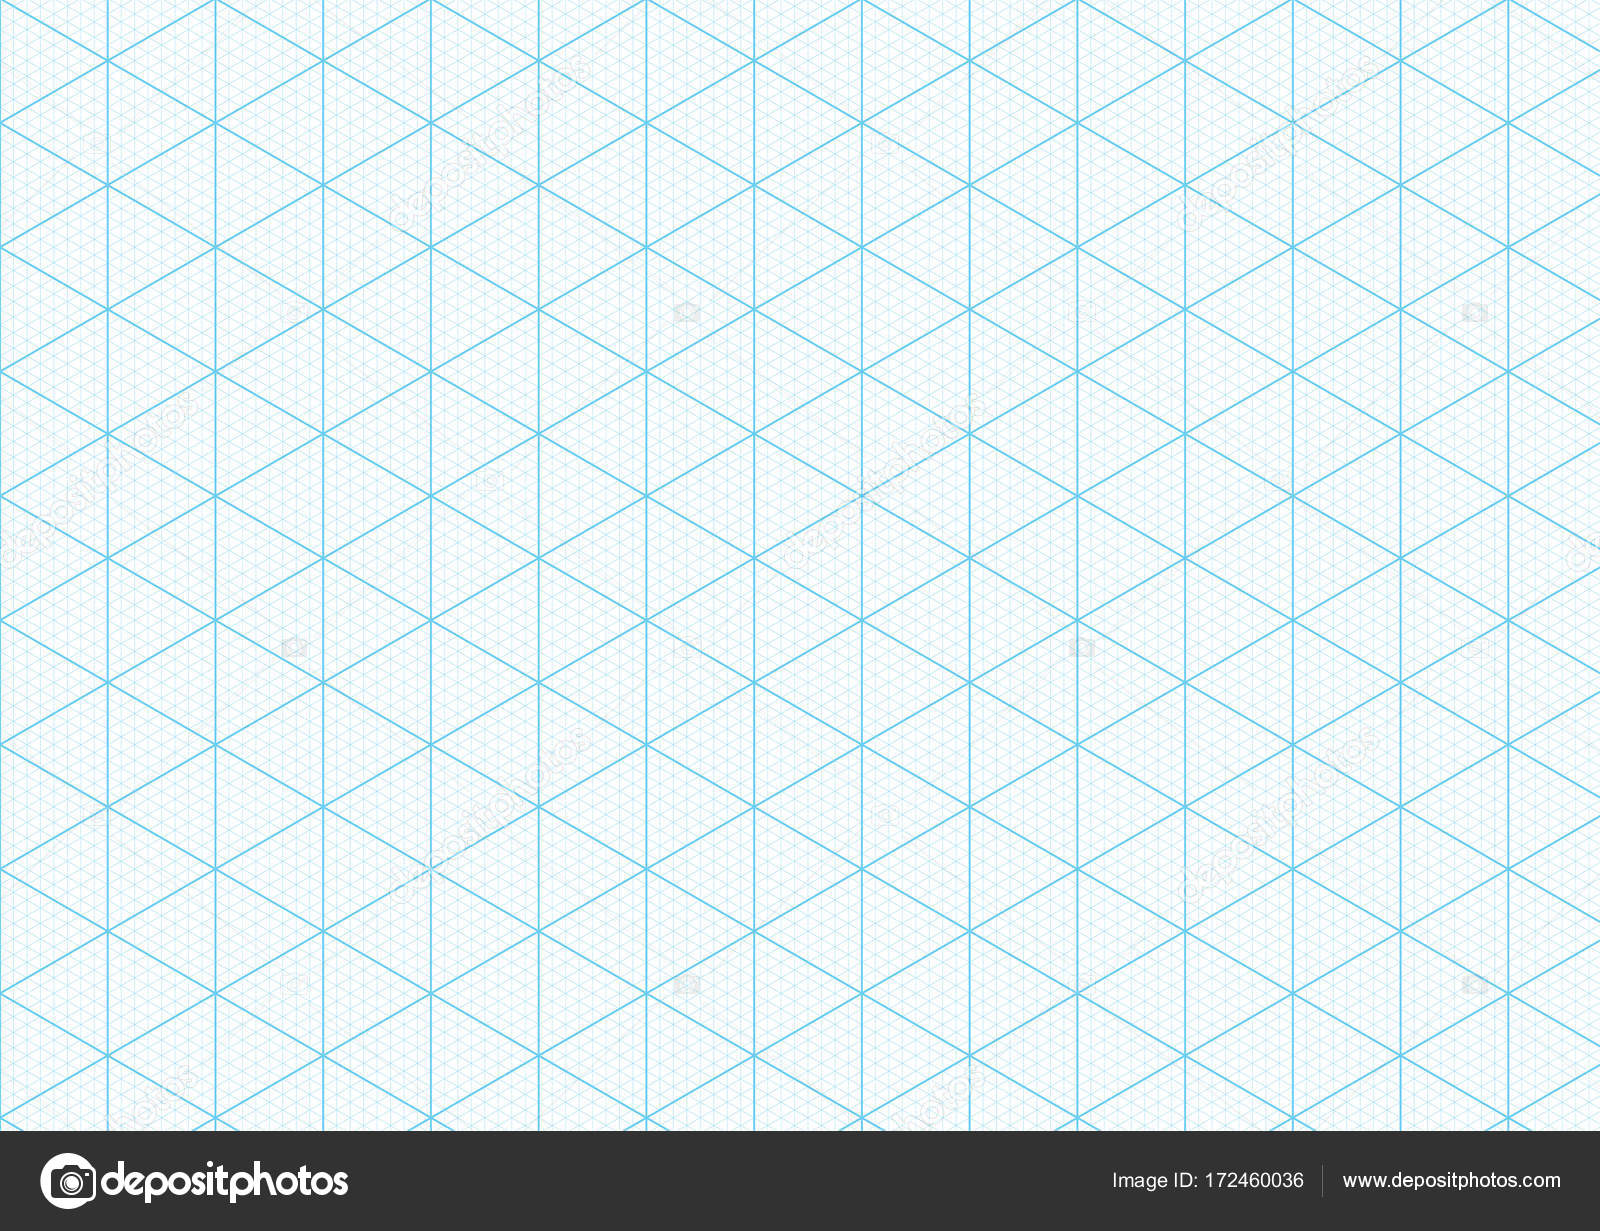 isometric graph paper background plotting triangular